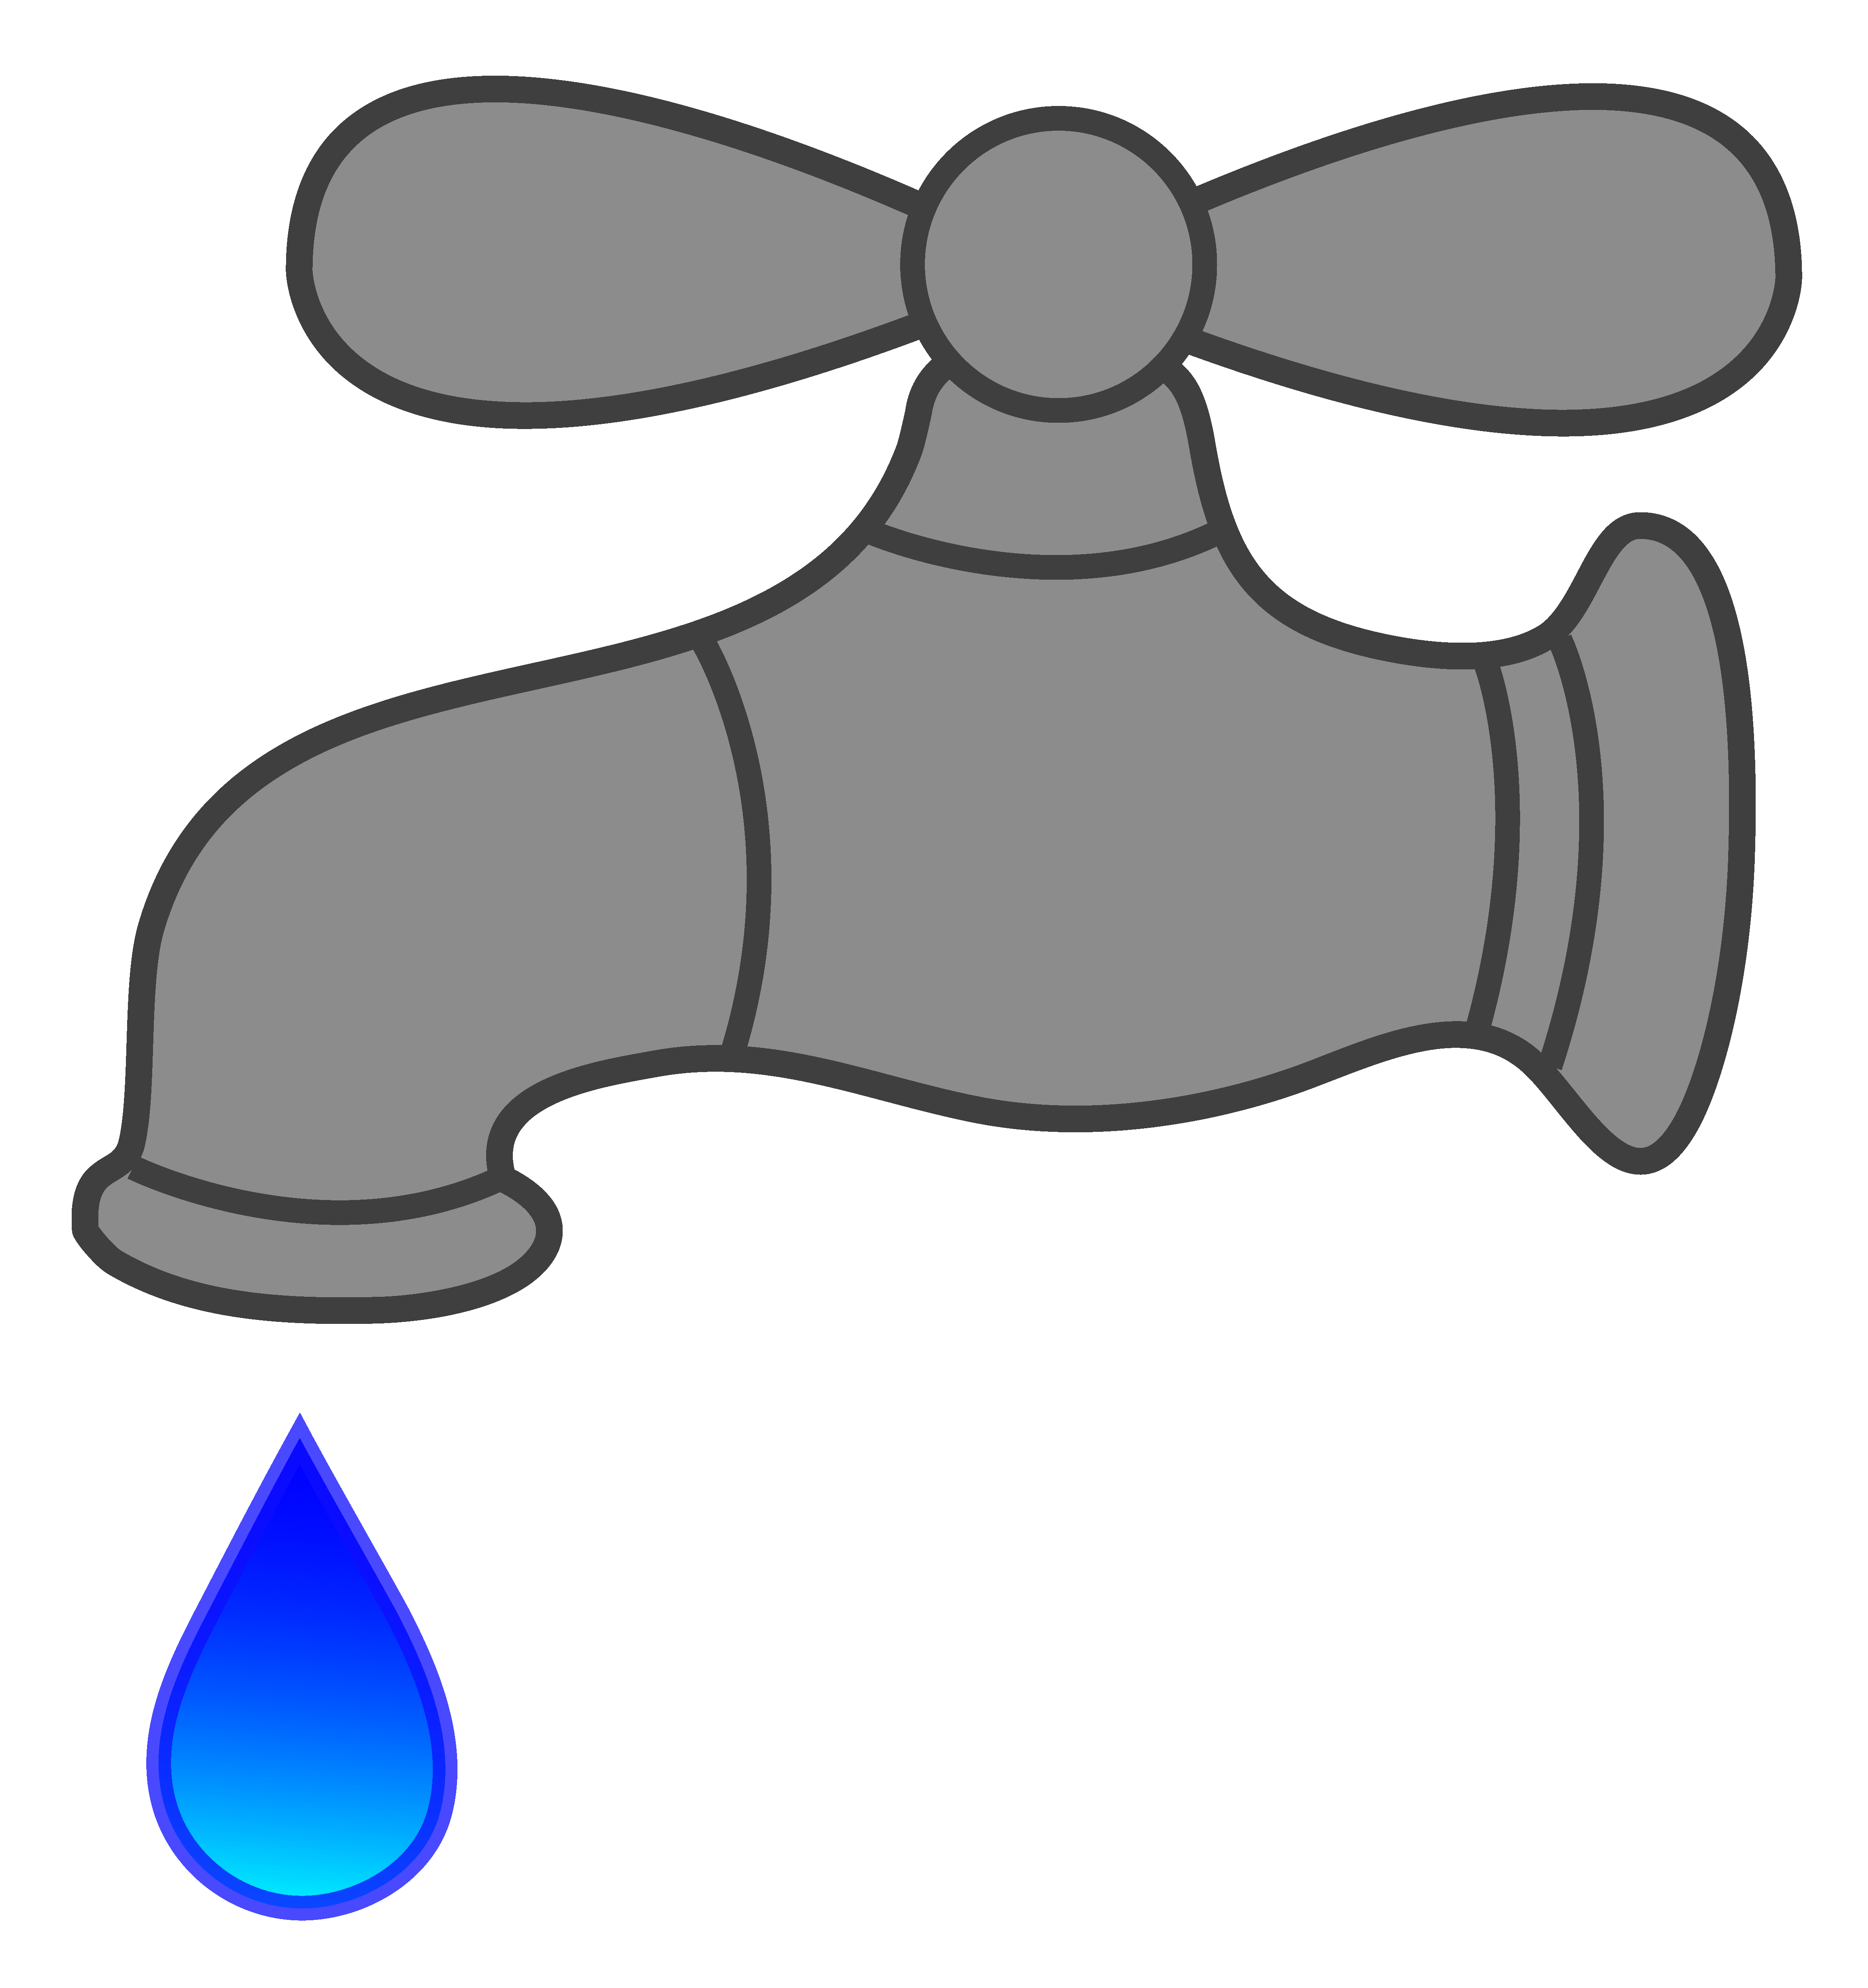 Water Faucet Dripping Free clipart free image.